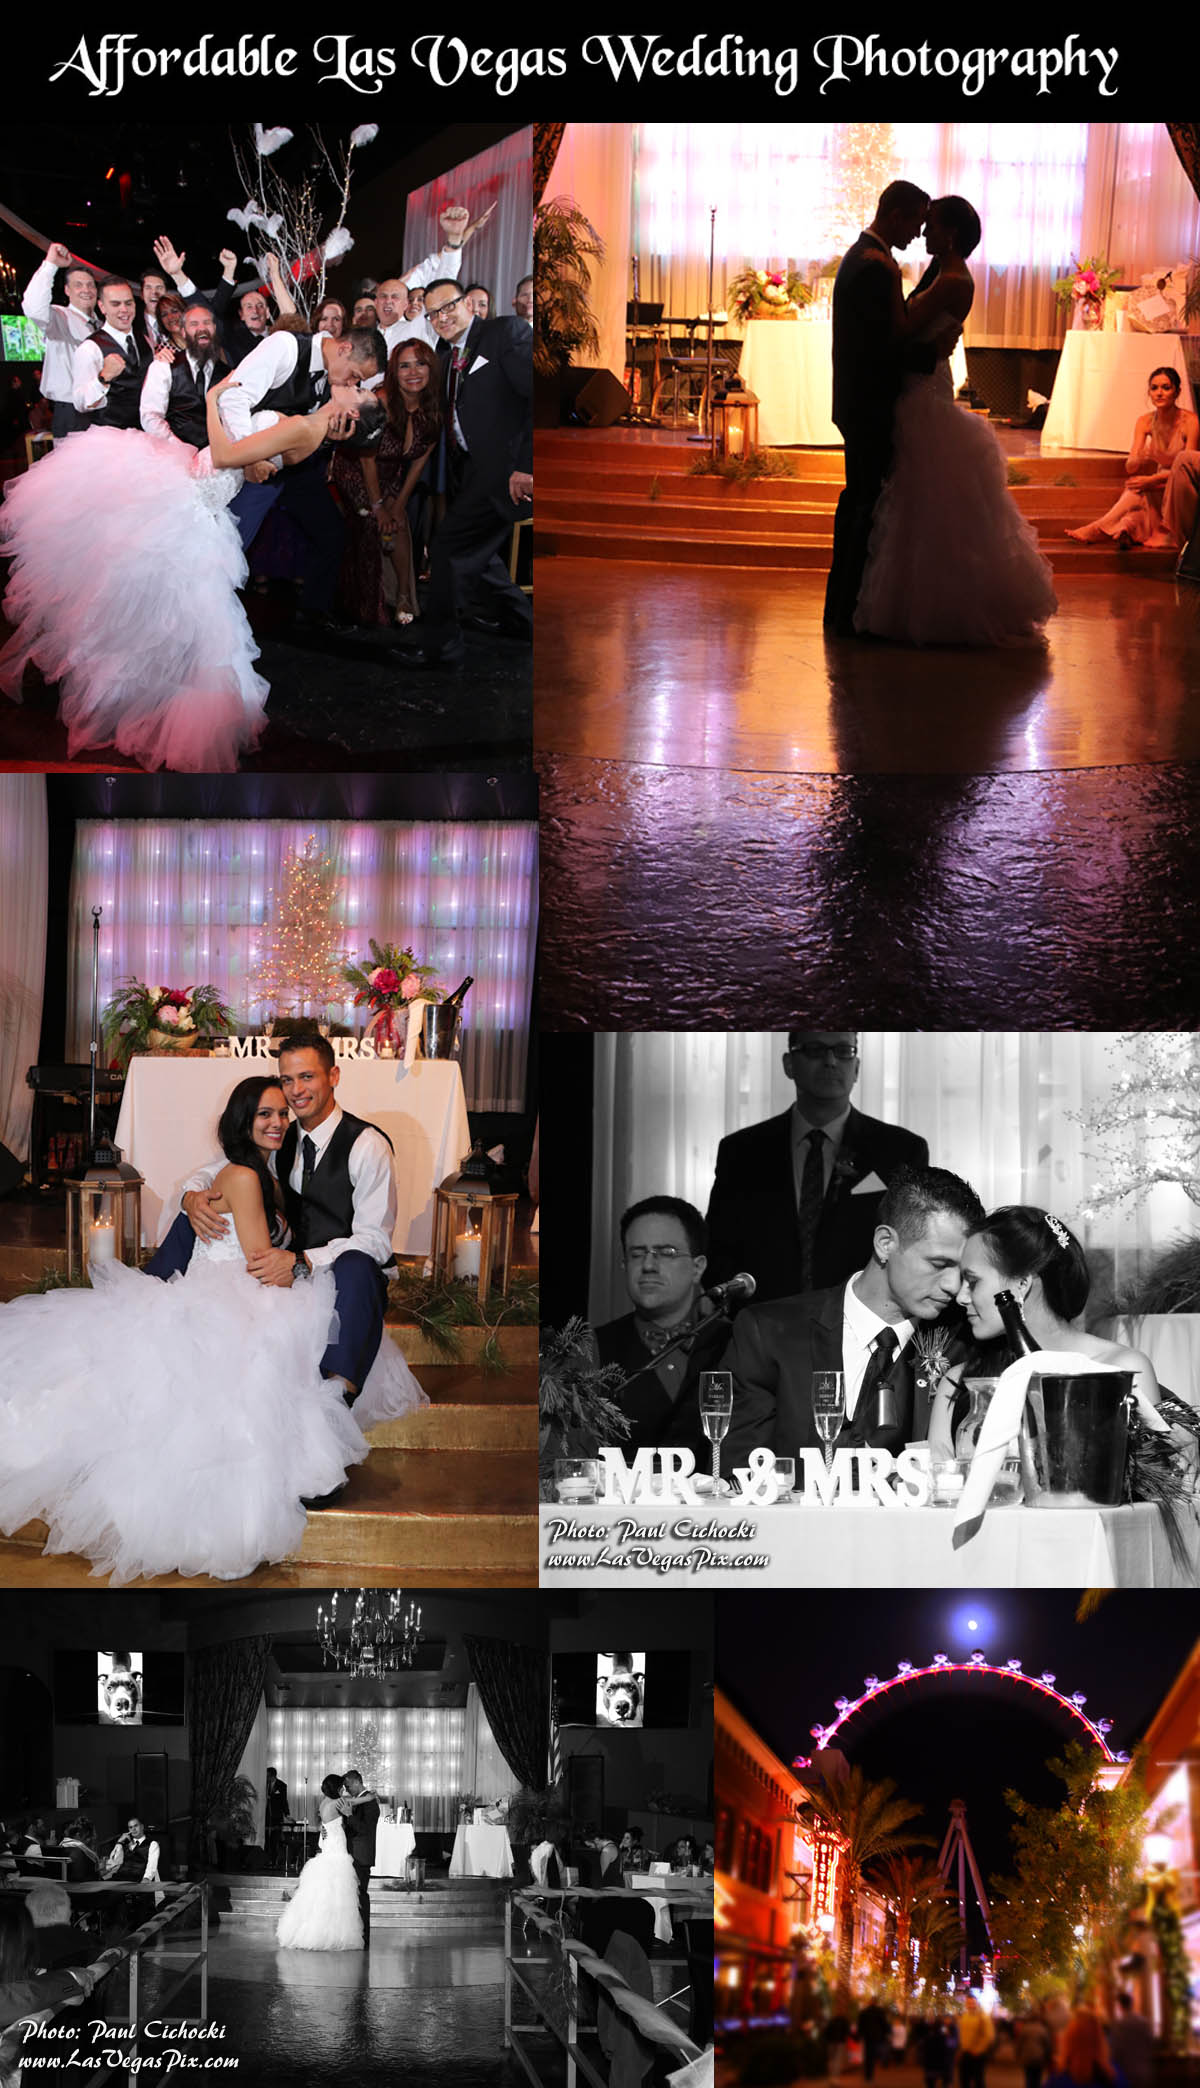 Affordable las vegas wedding photography offers budget for Affordable vegas weddings